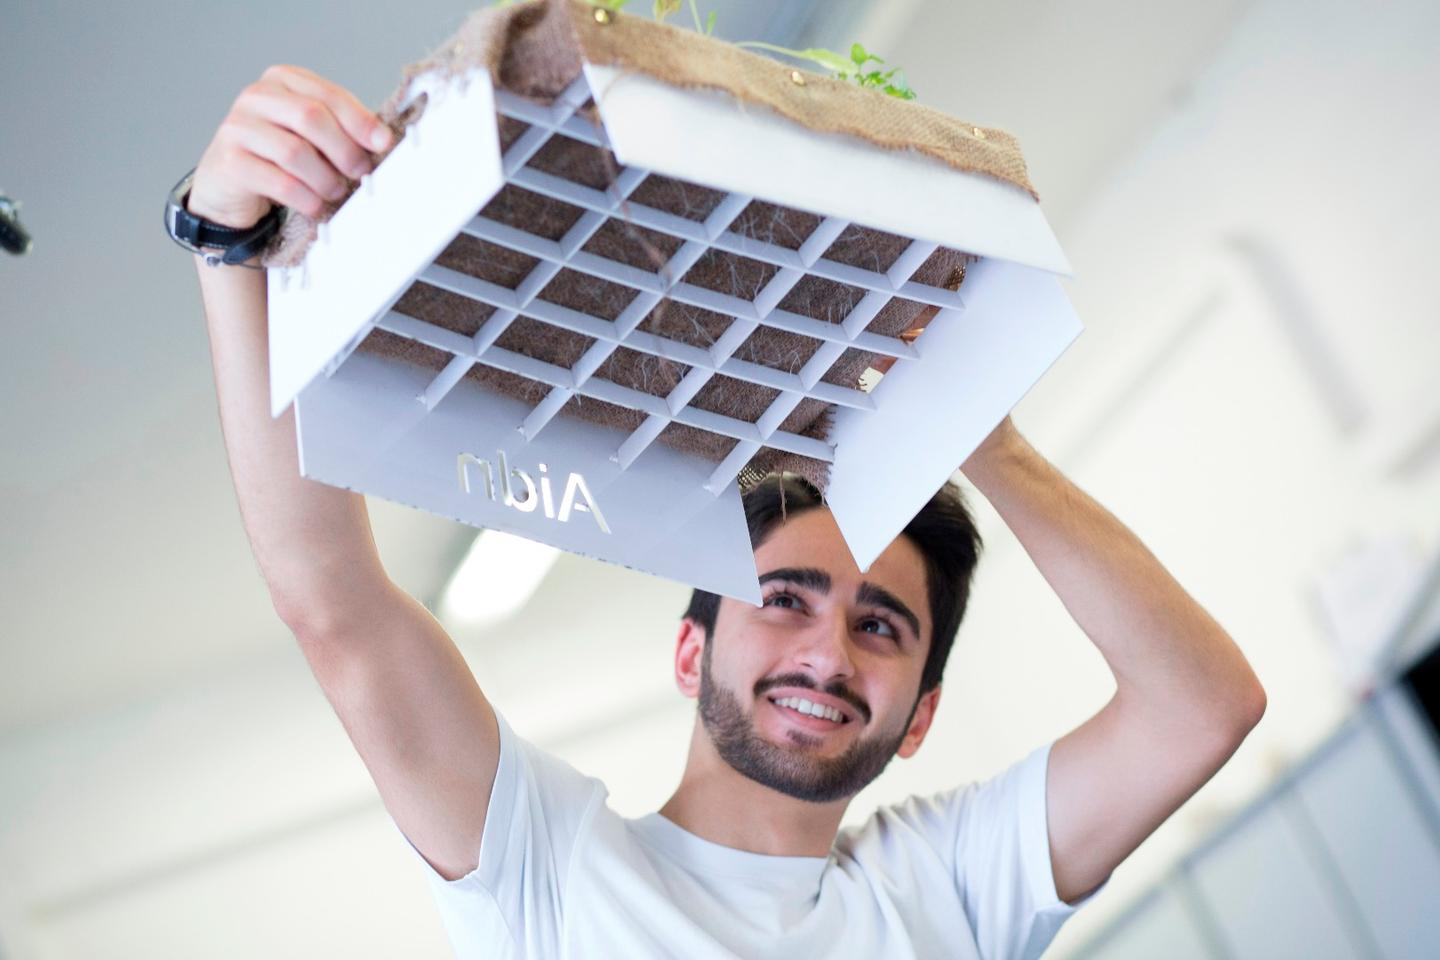 Nikian Aghababaie says his low-cost kit will allow families in harsh climates to cultivate vegetables using 90 percent less water